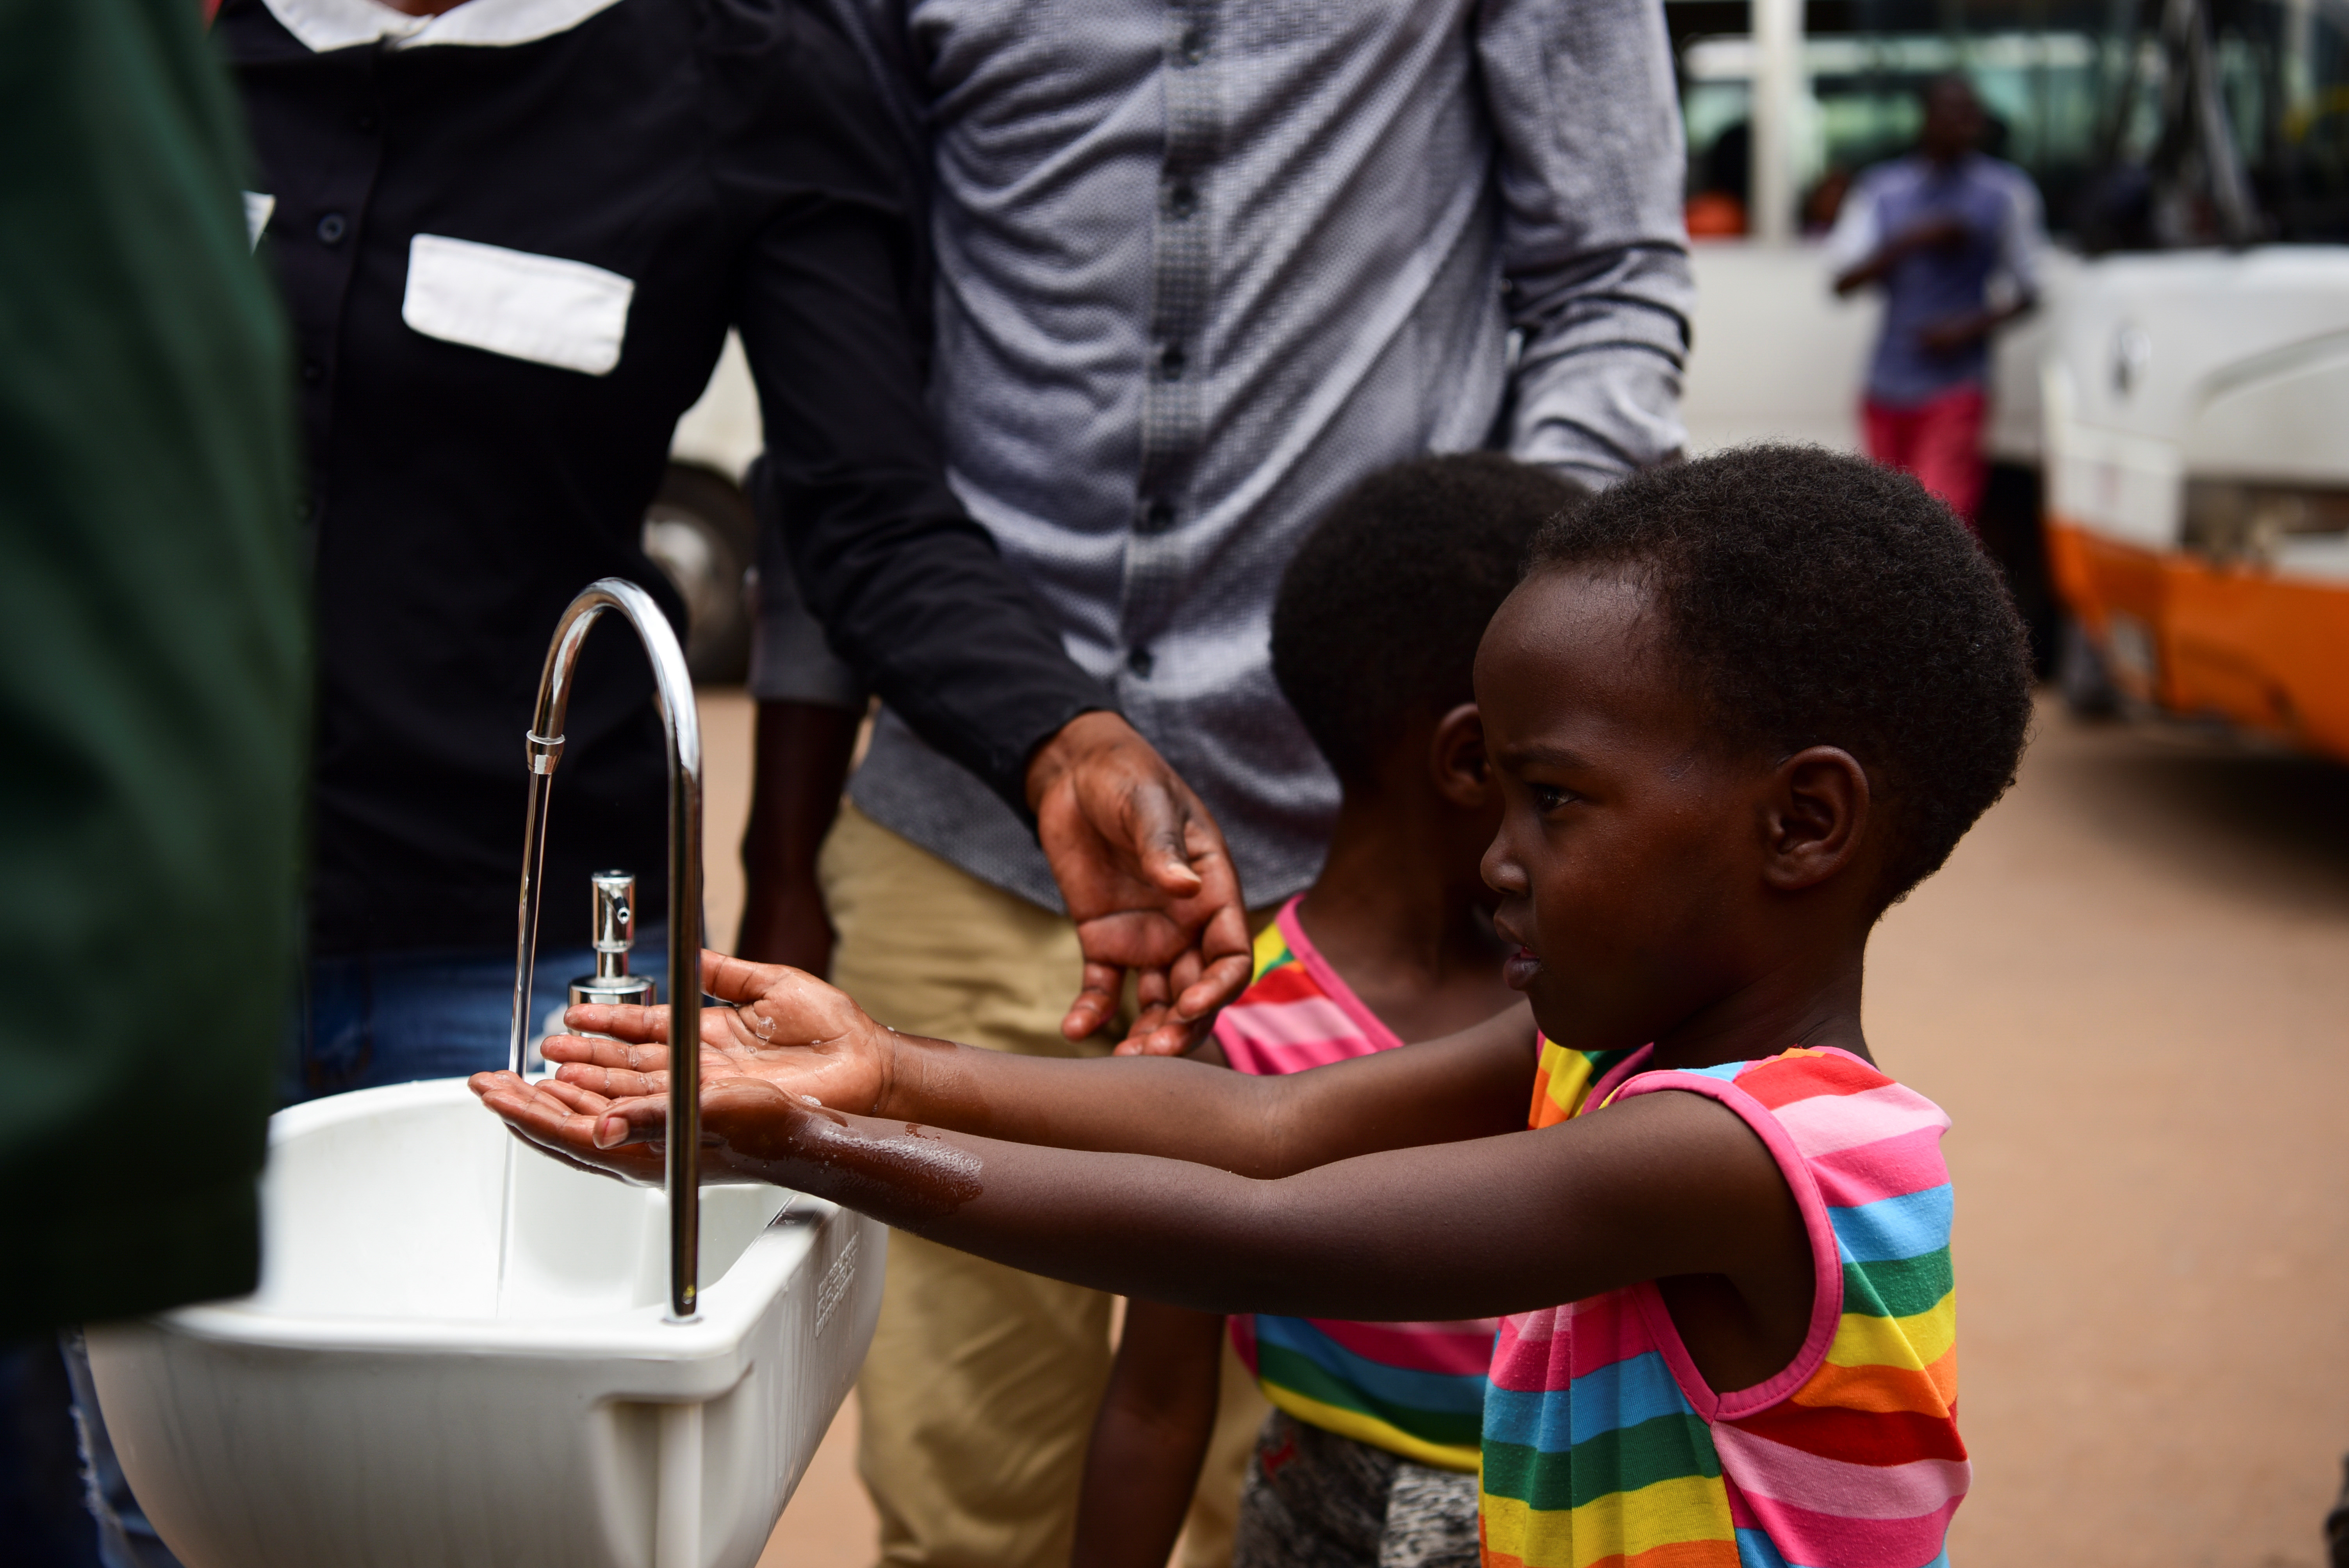 Twin sisters, Emeline and Eveline, wash their hands at a public hand washing station as a cautionary measure against the coronavirus at Nyabugogo Bus Park in Kigali, Rwanda. March 11, 2020.